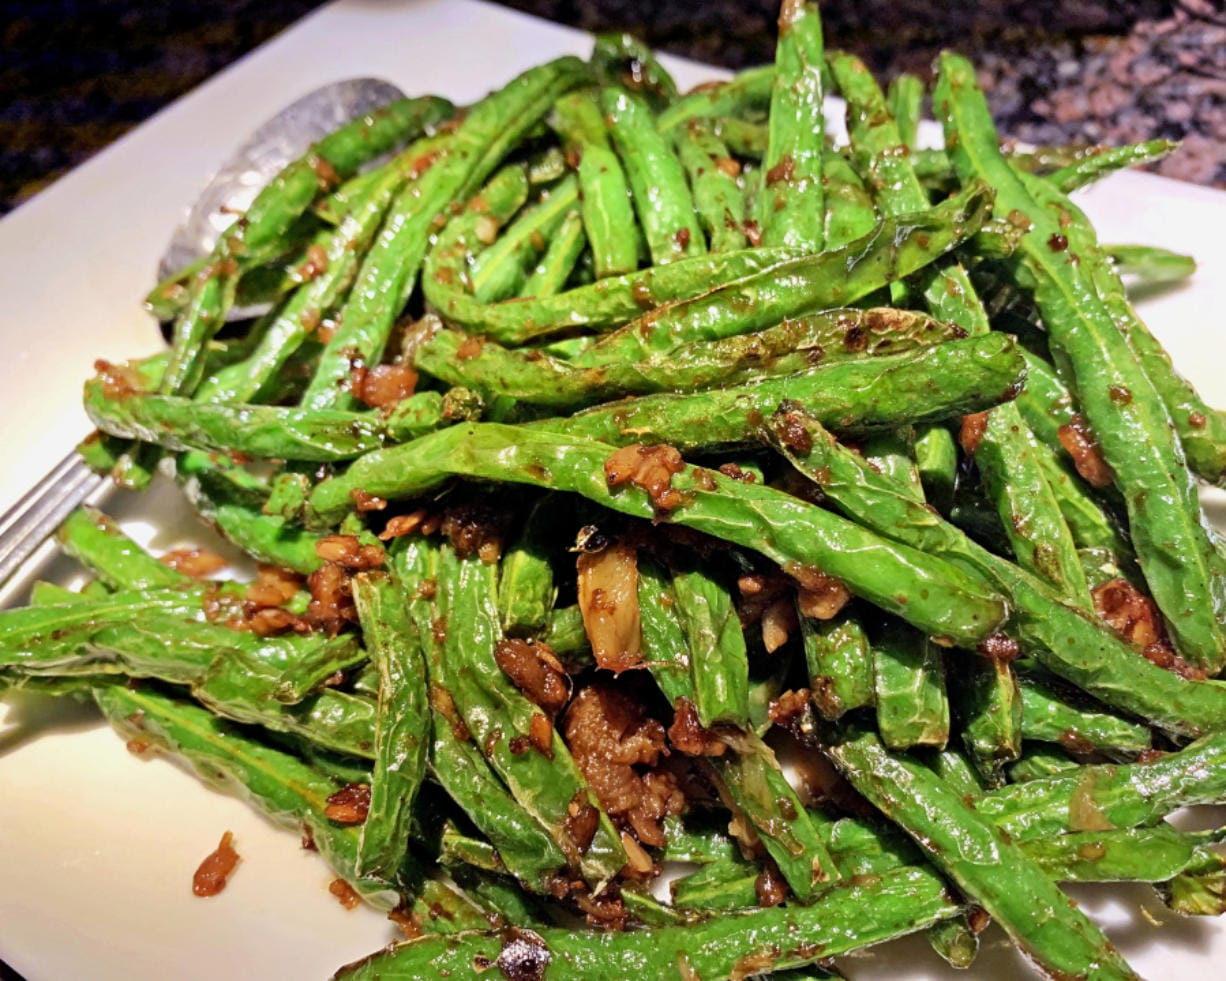 Sauteed string beans at Eastland Sushi & Asian Cuisine. (Rick Browne/ for The Columbian)